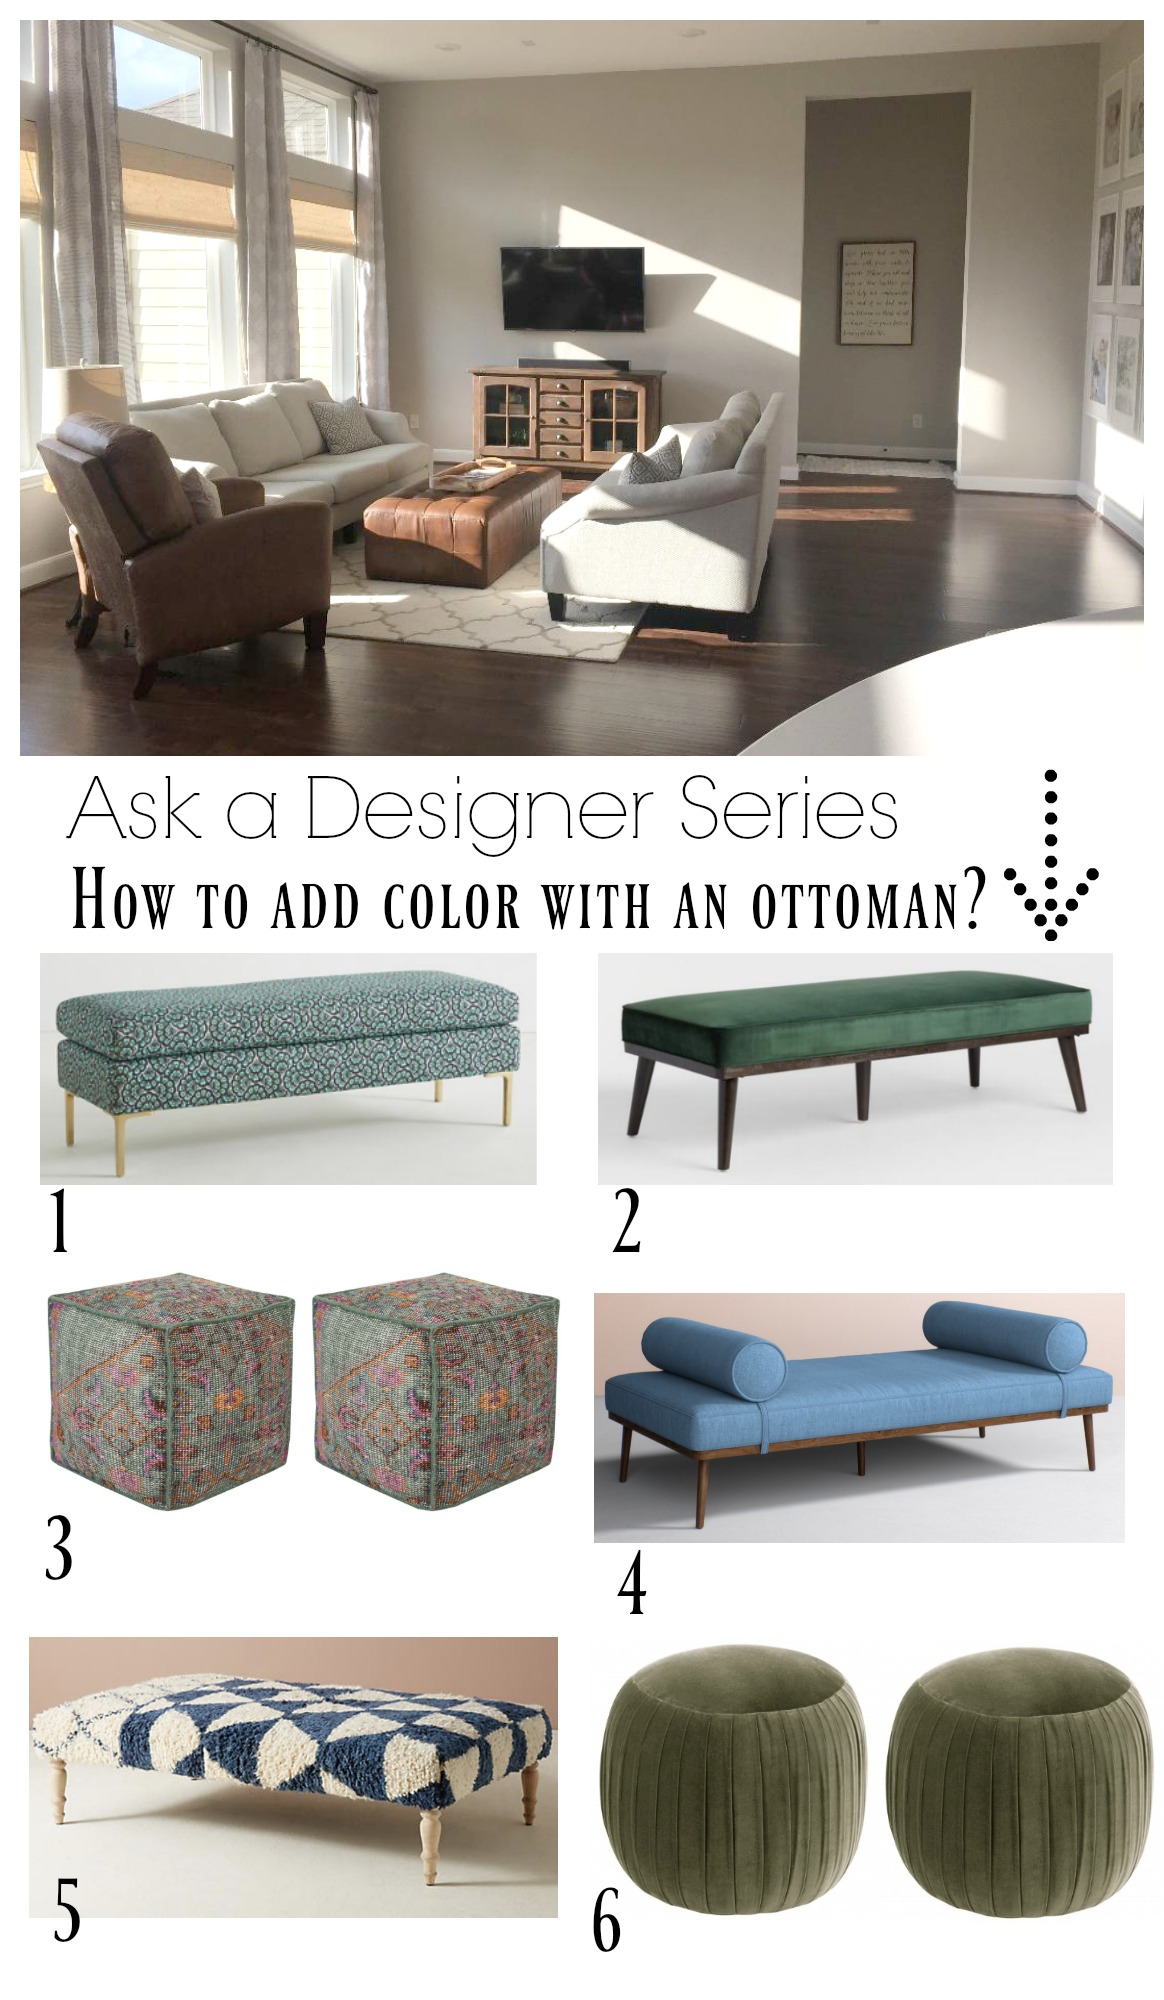 Ask a Desinger Series- How to add color wtih an ottoman?